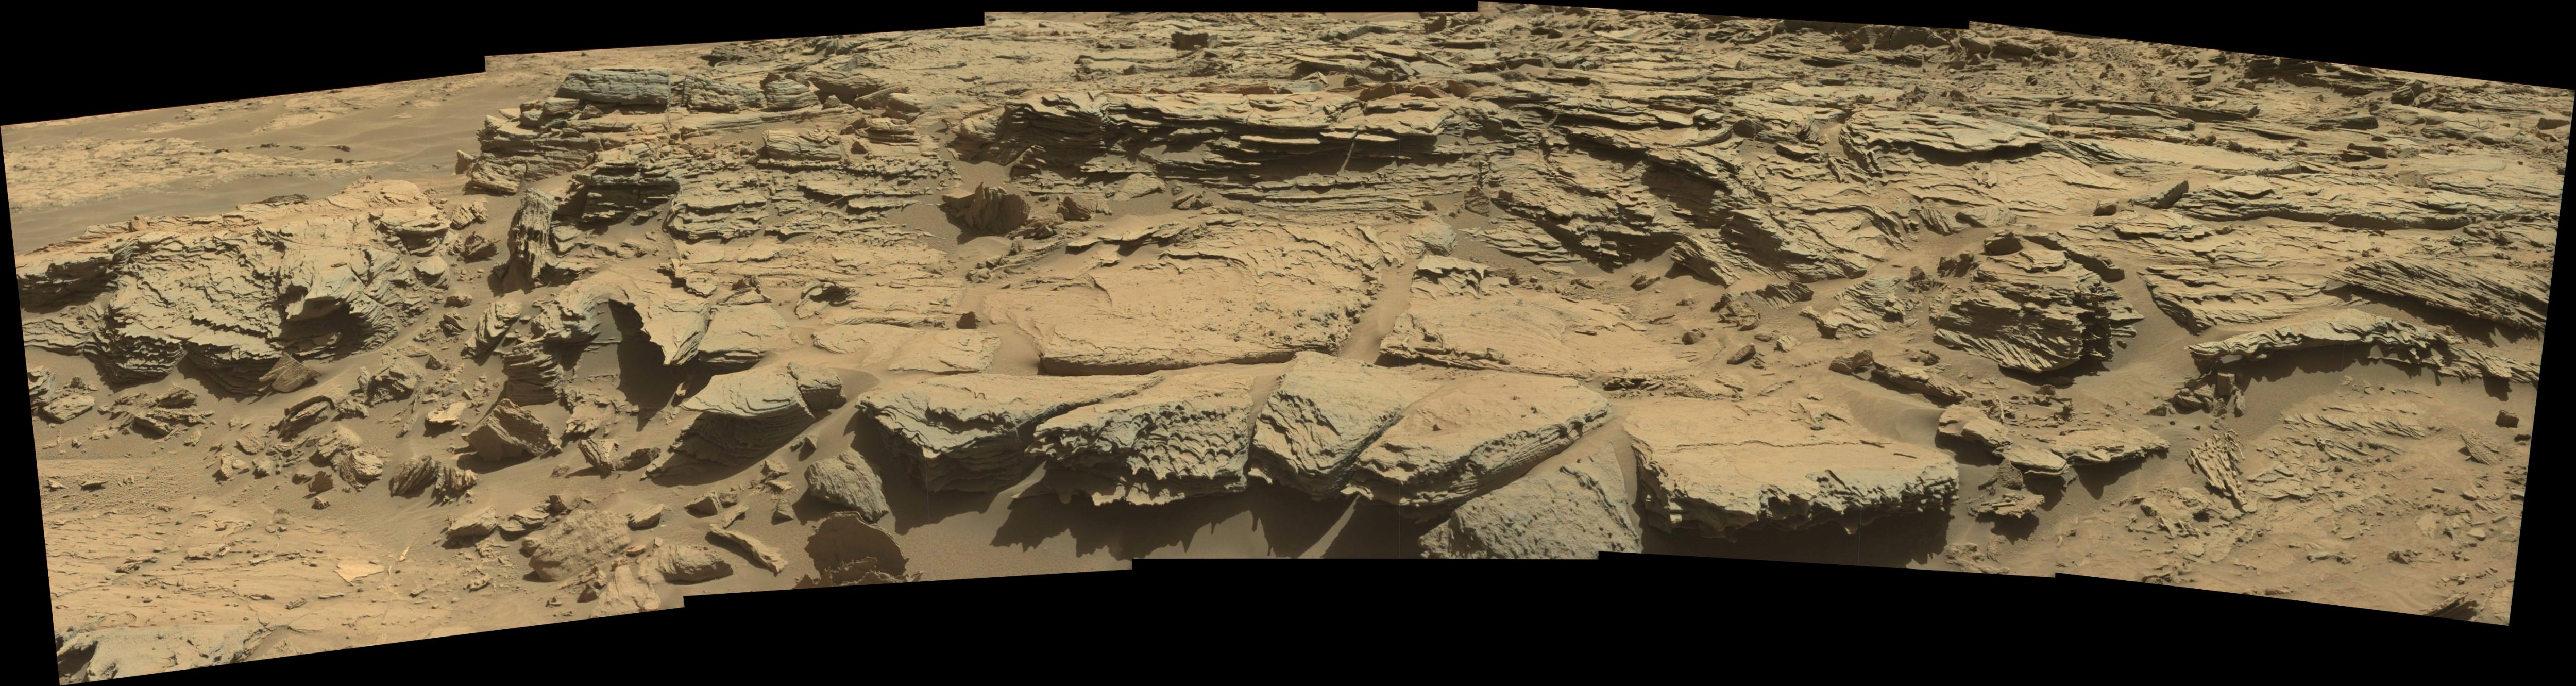 panoramic curiosity rover view 2 - sol 1303 - was life on mars